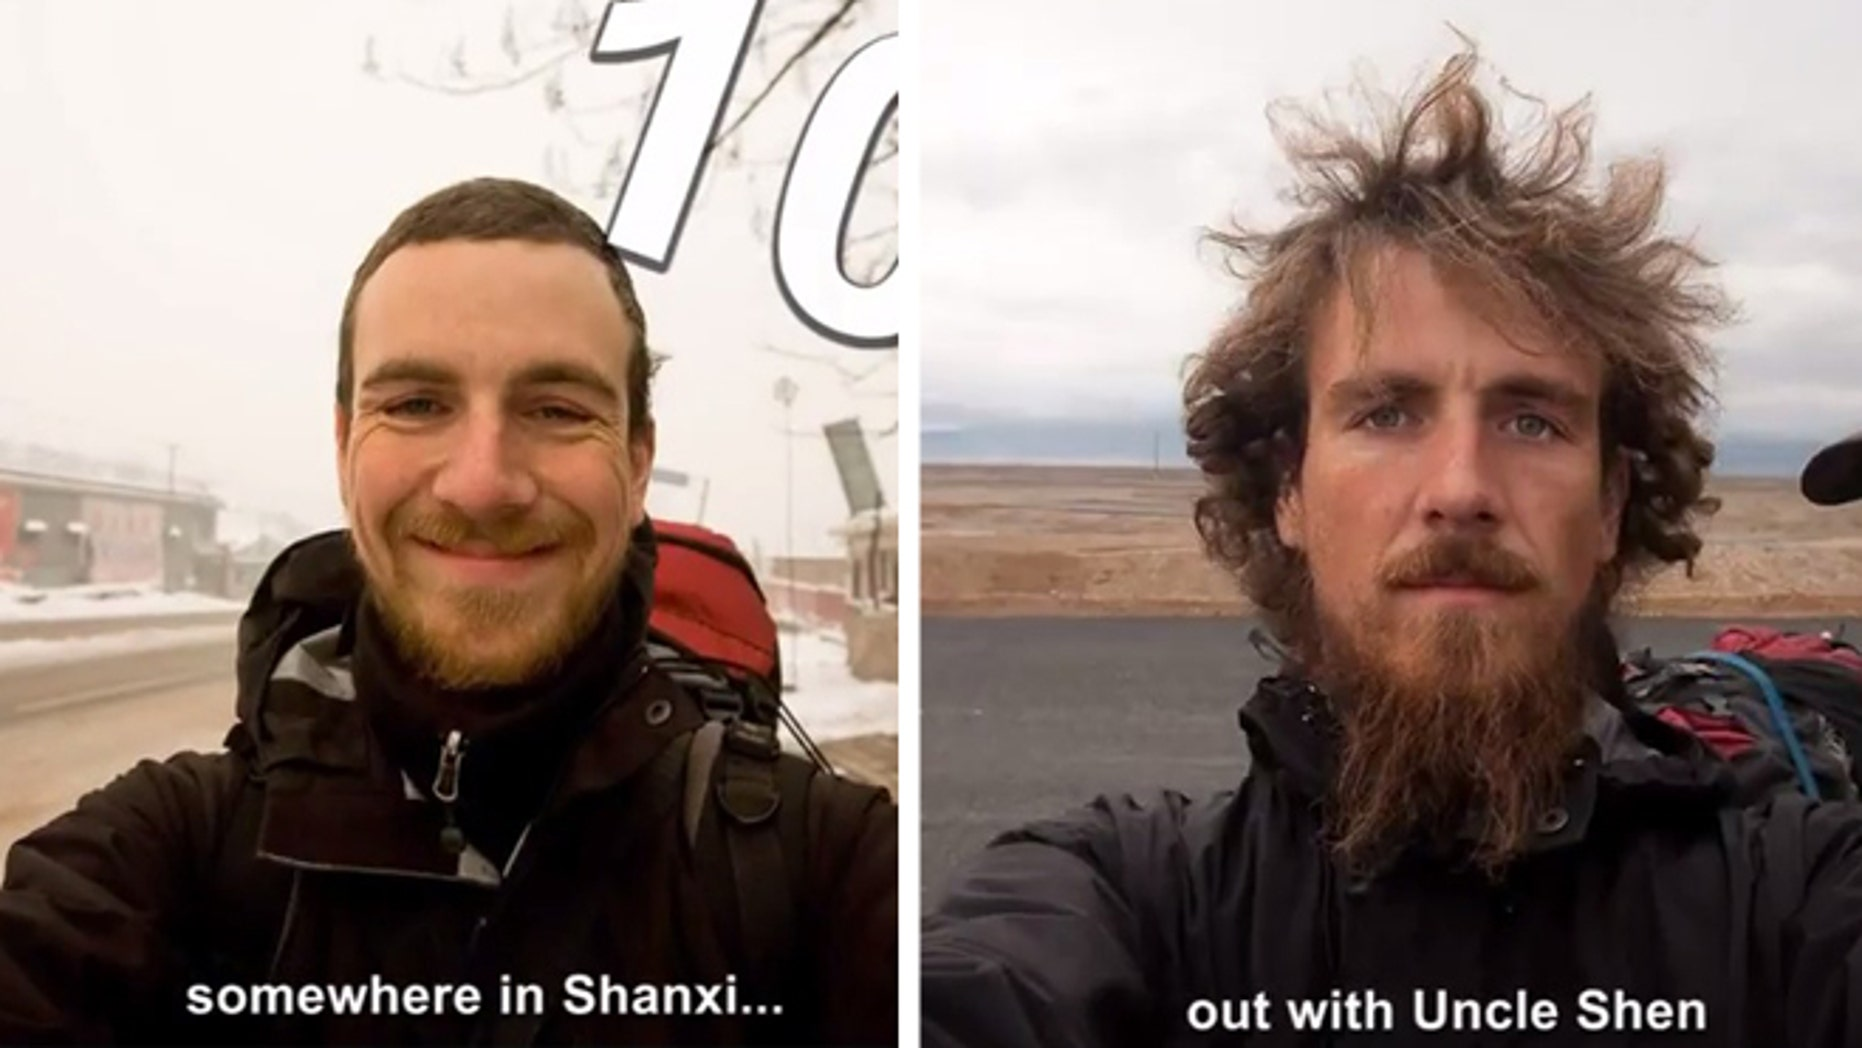 An epic transformation during one man's 2,800 mile trek.